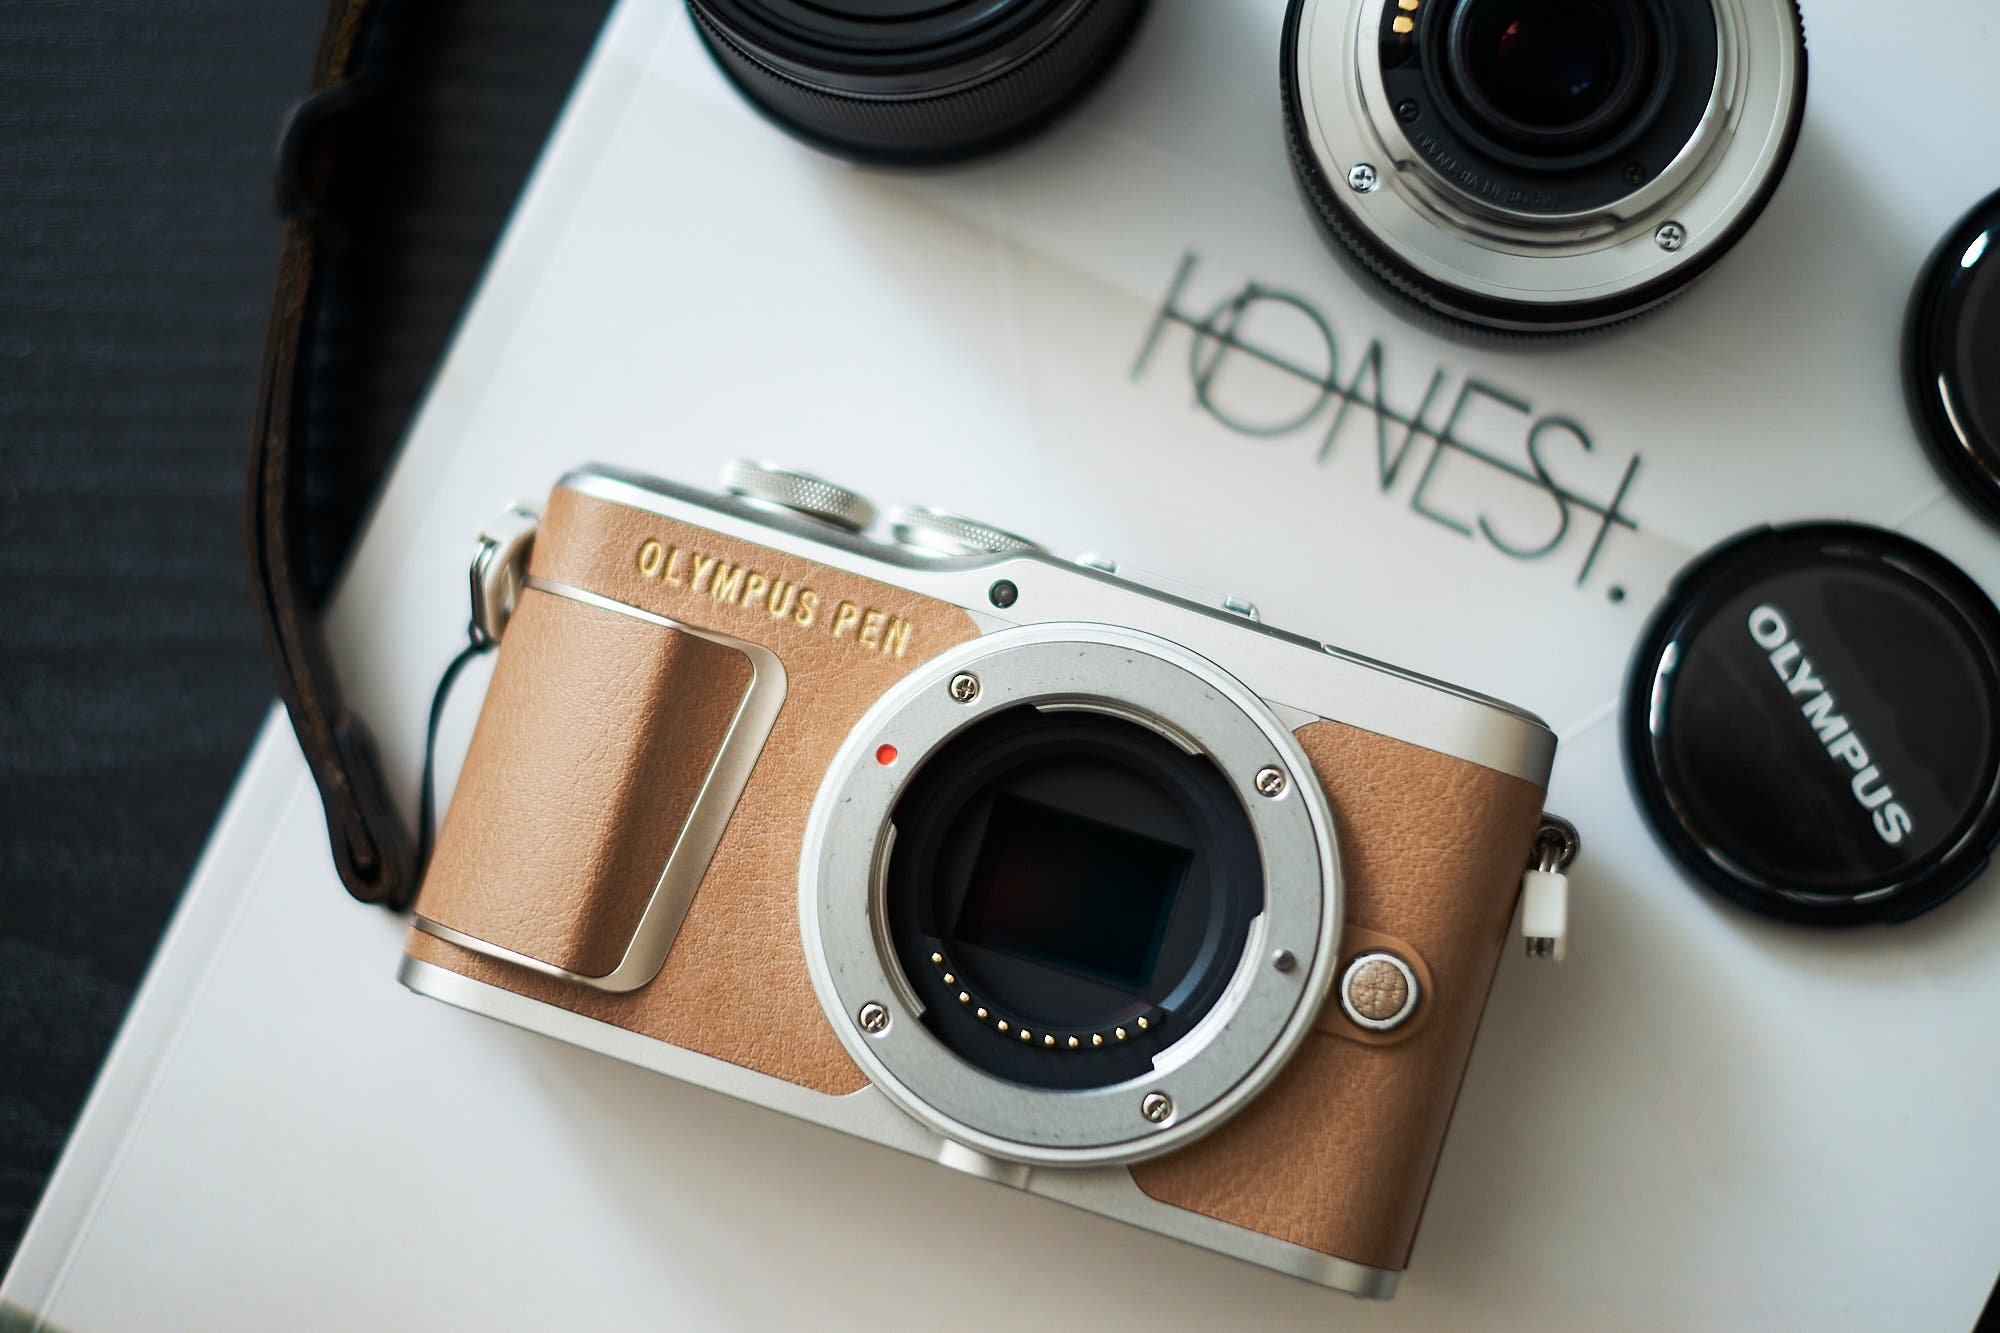 Review: Olympus EPL9 (Why and How I Fell Back in Love With Olympus)